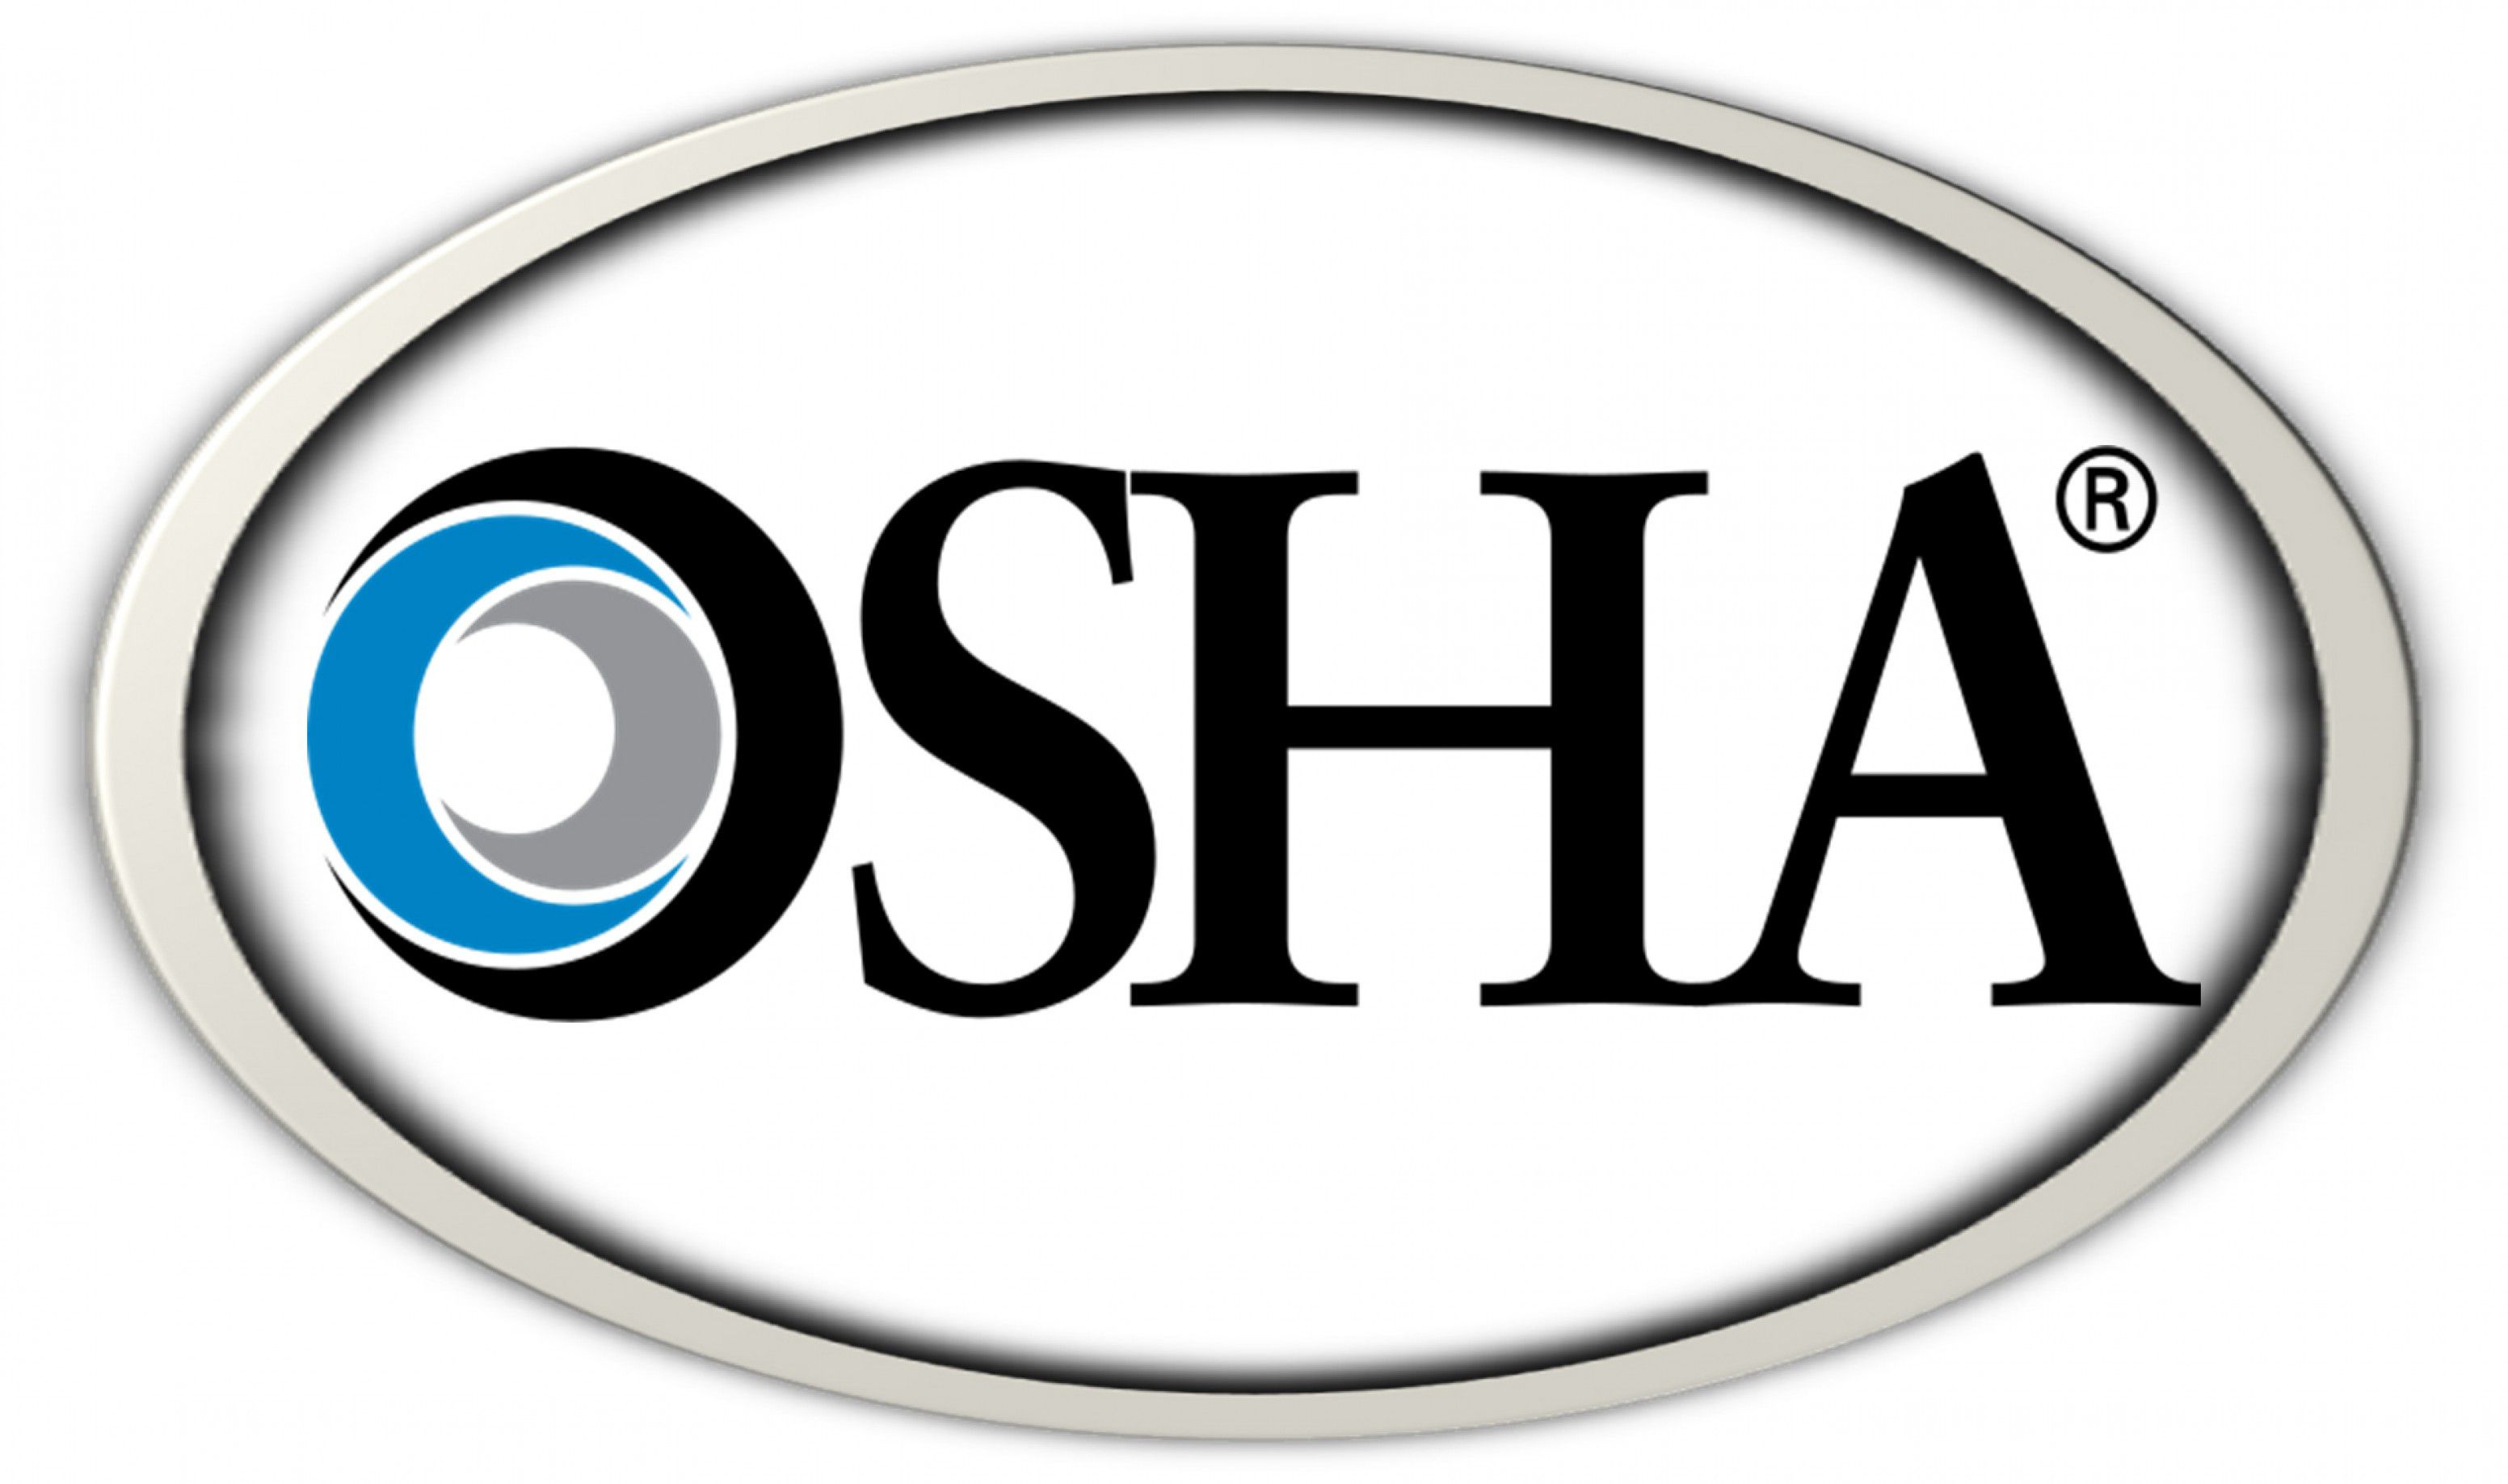 Osha compliance and risk management watkins insurance group we at watkins insurance group we know what matters to business owners we help you by maximizing one of your greatest assets your staff 1betcityfo Images